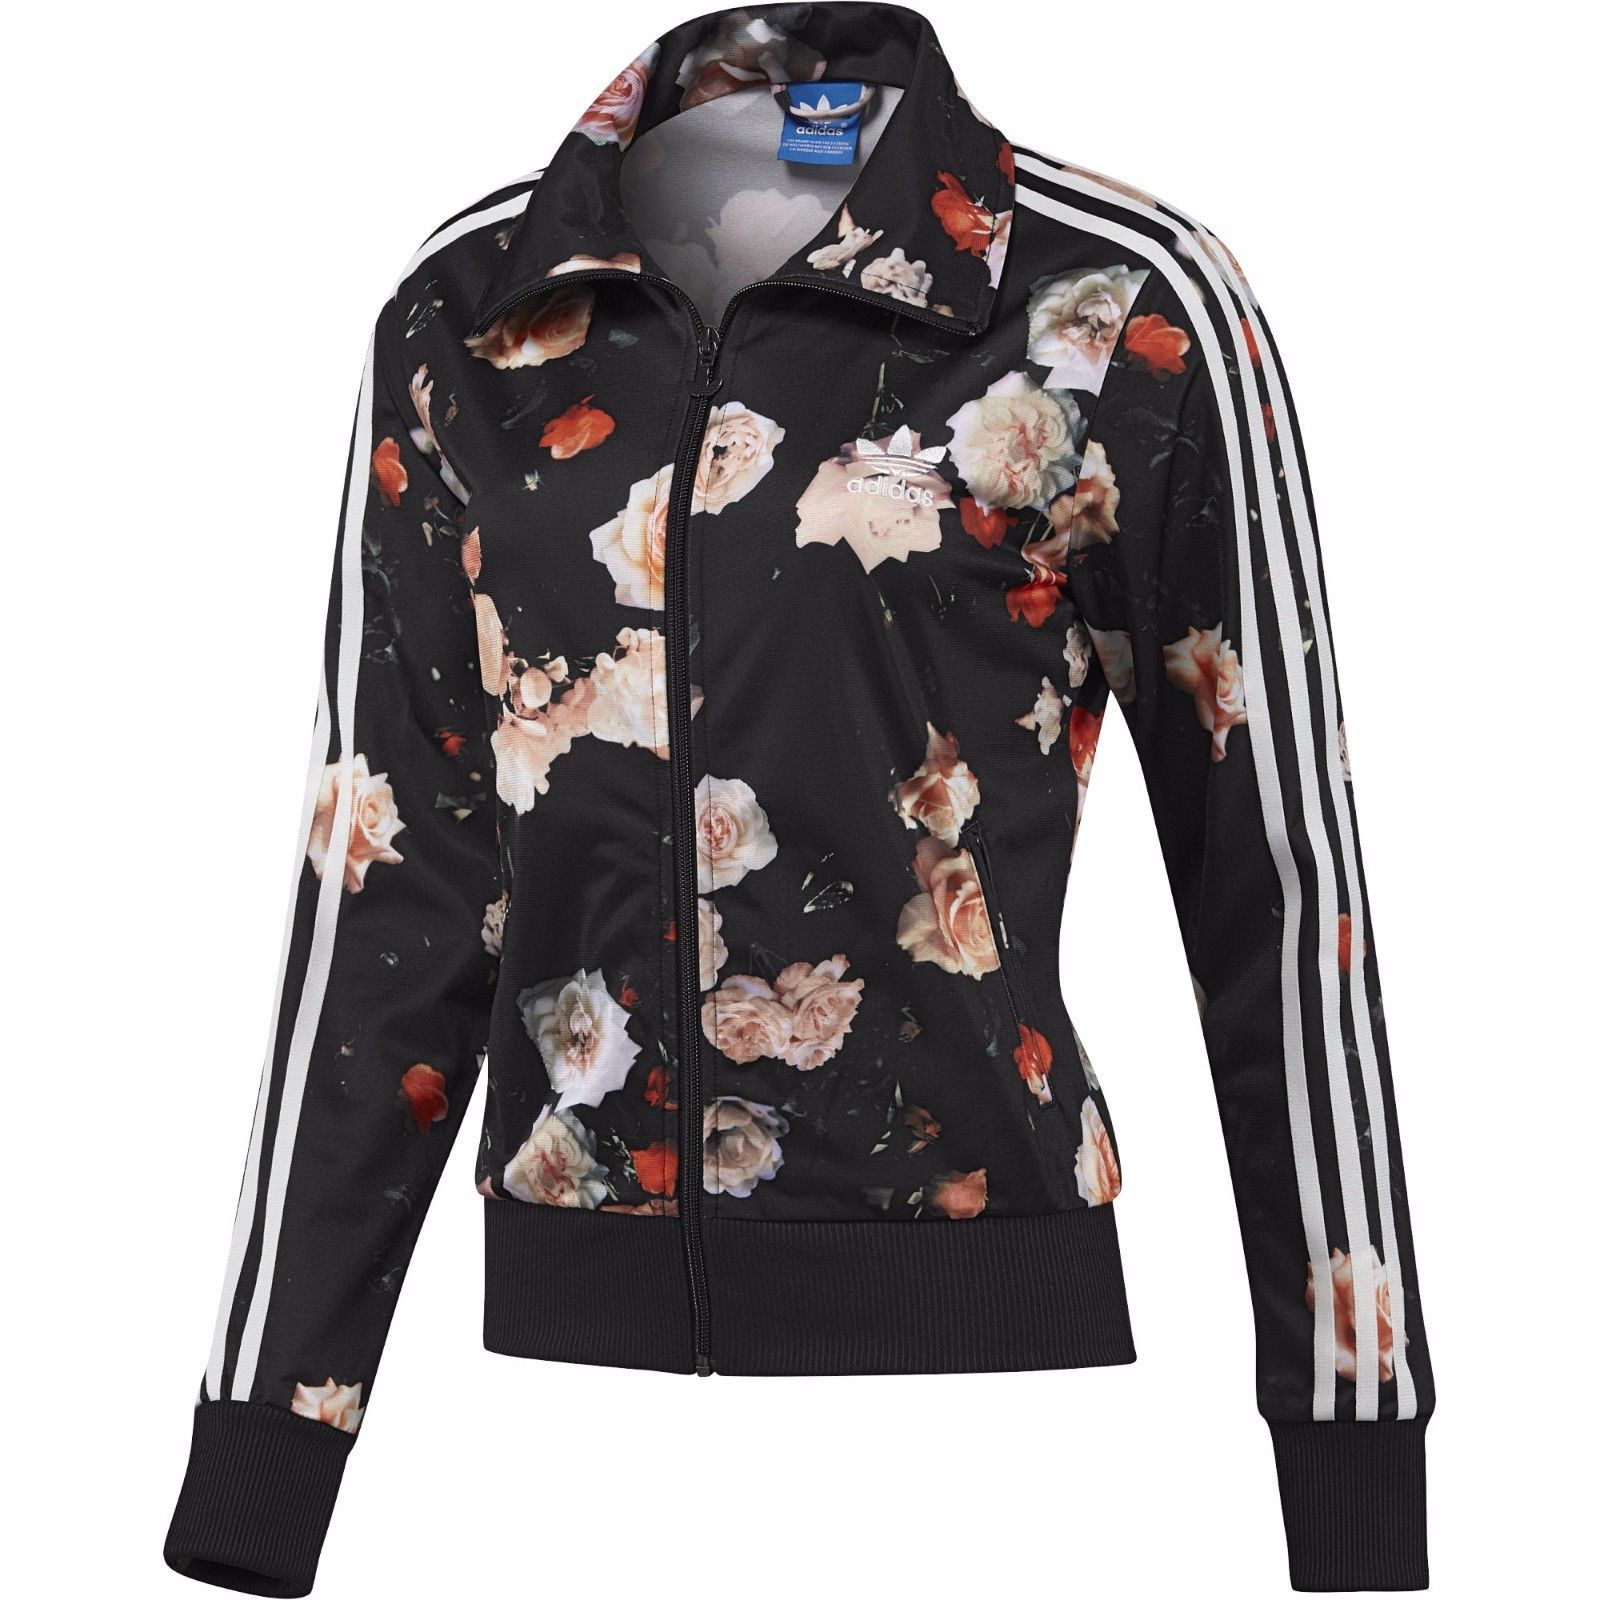 8e58d1c41c6 New Adidas Firebird Track Top Floral Roses and 50 similar items. S l1600